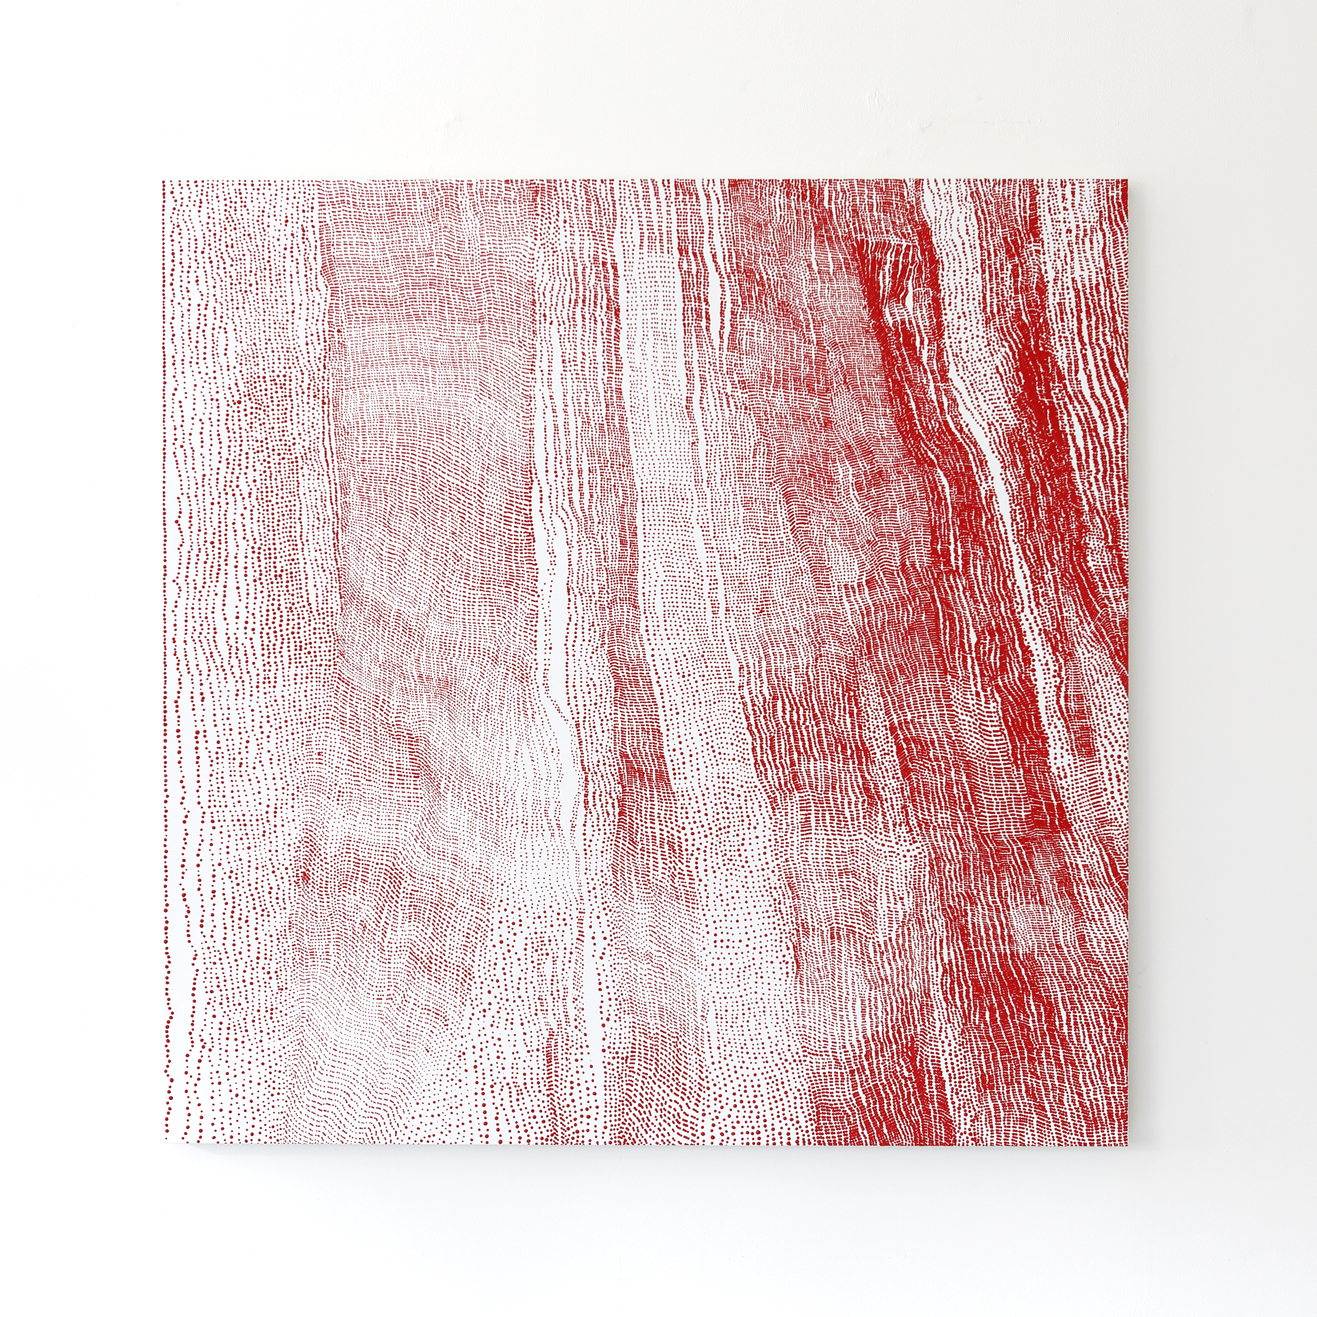 Mio Yamato,  Repetition Red (dot) 23 ,Courtesy of the artist and COHJU Contemporary Art